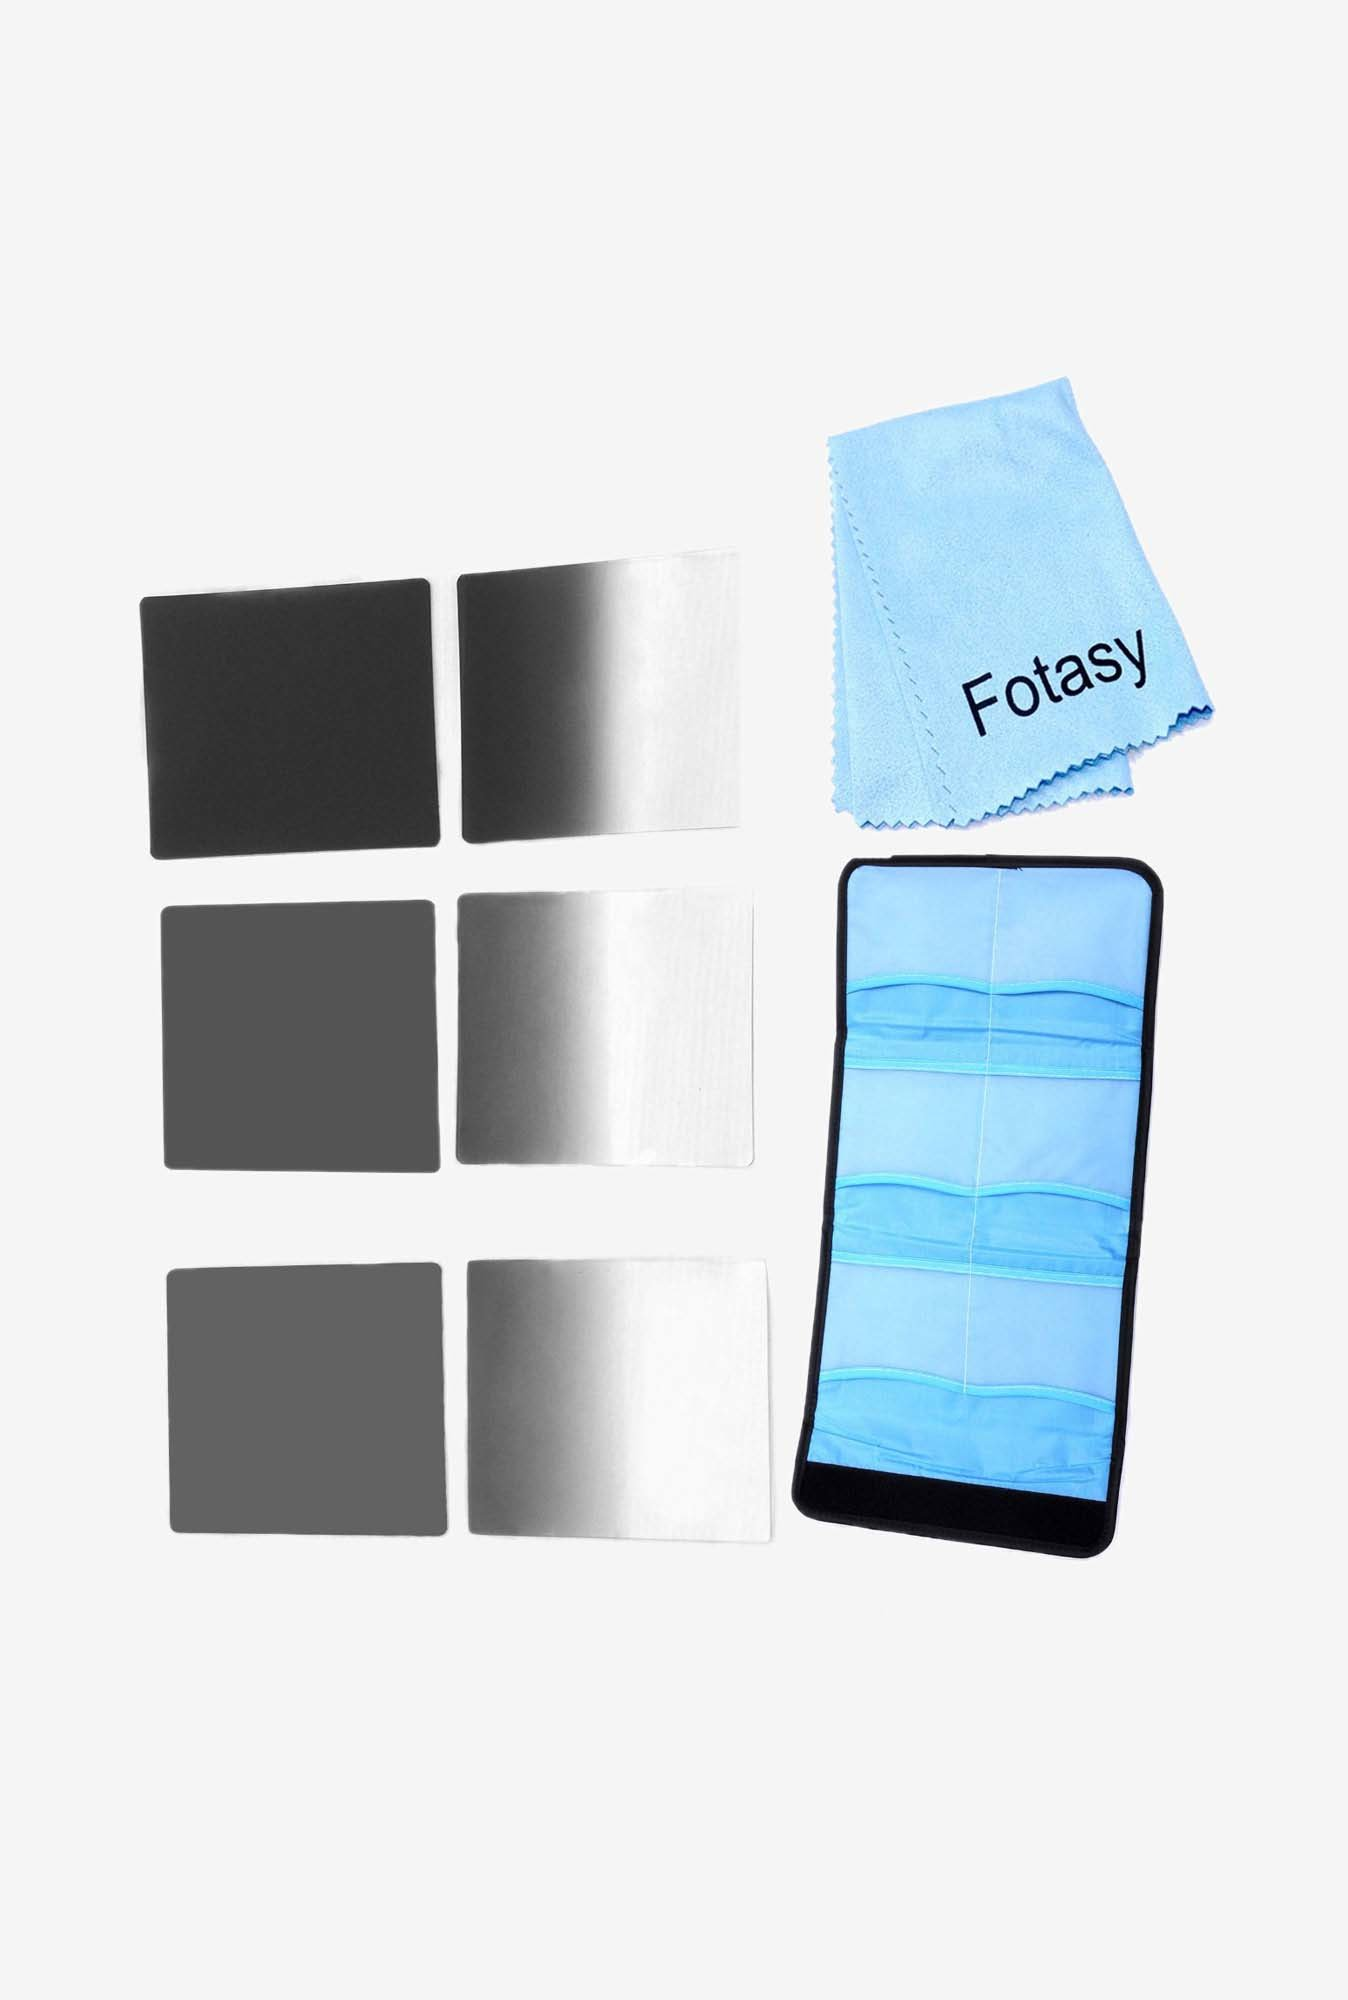 Fotasy CokinKitFilter Carry Case Cleaning Cloth (Black)